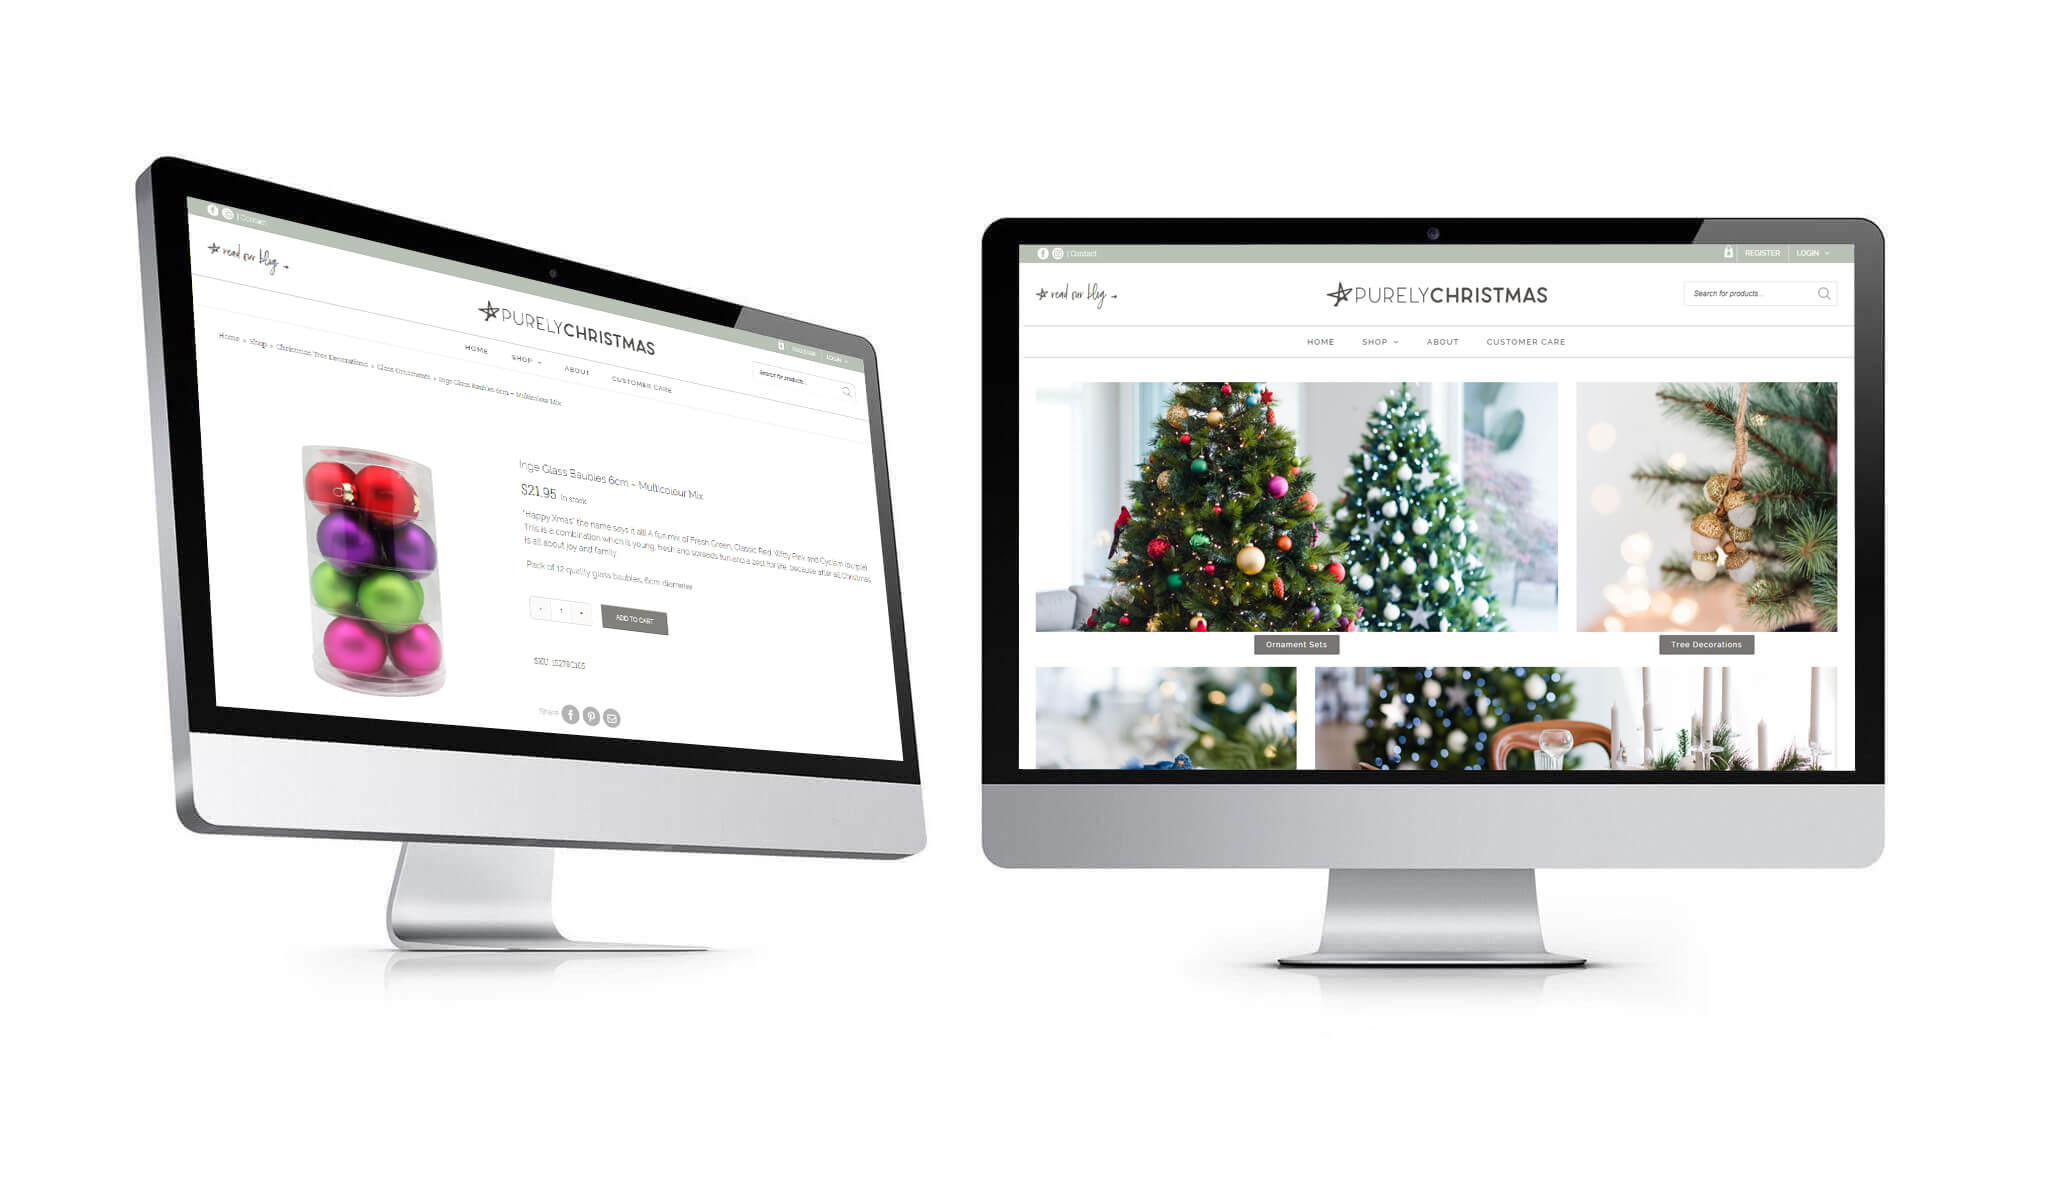 confetti design ecommerce online store purely christmas